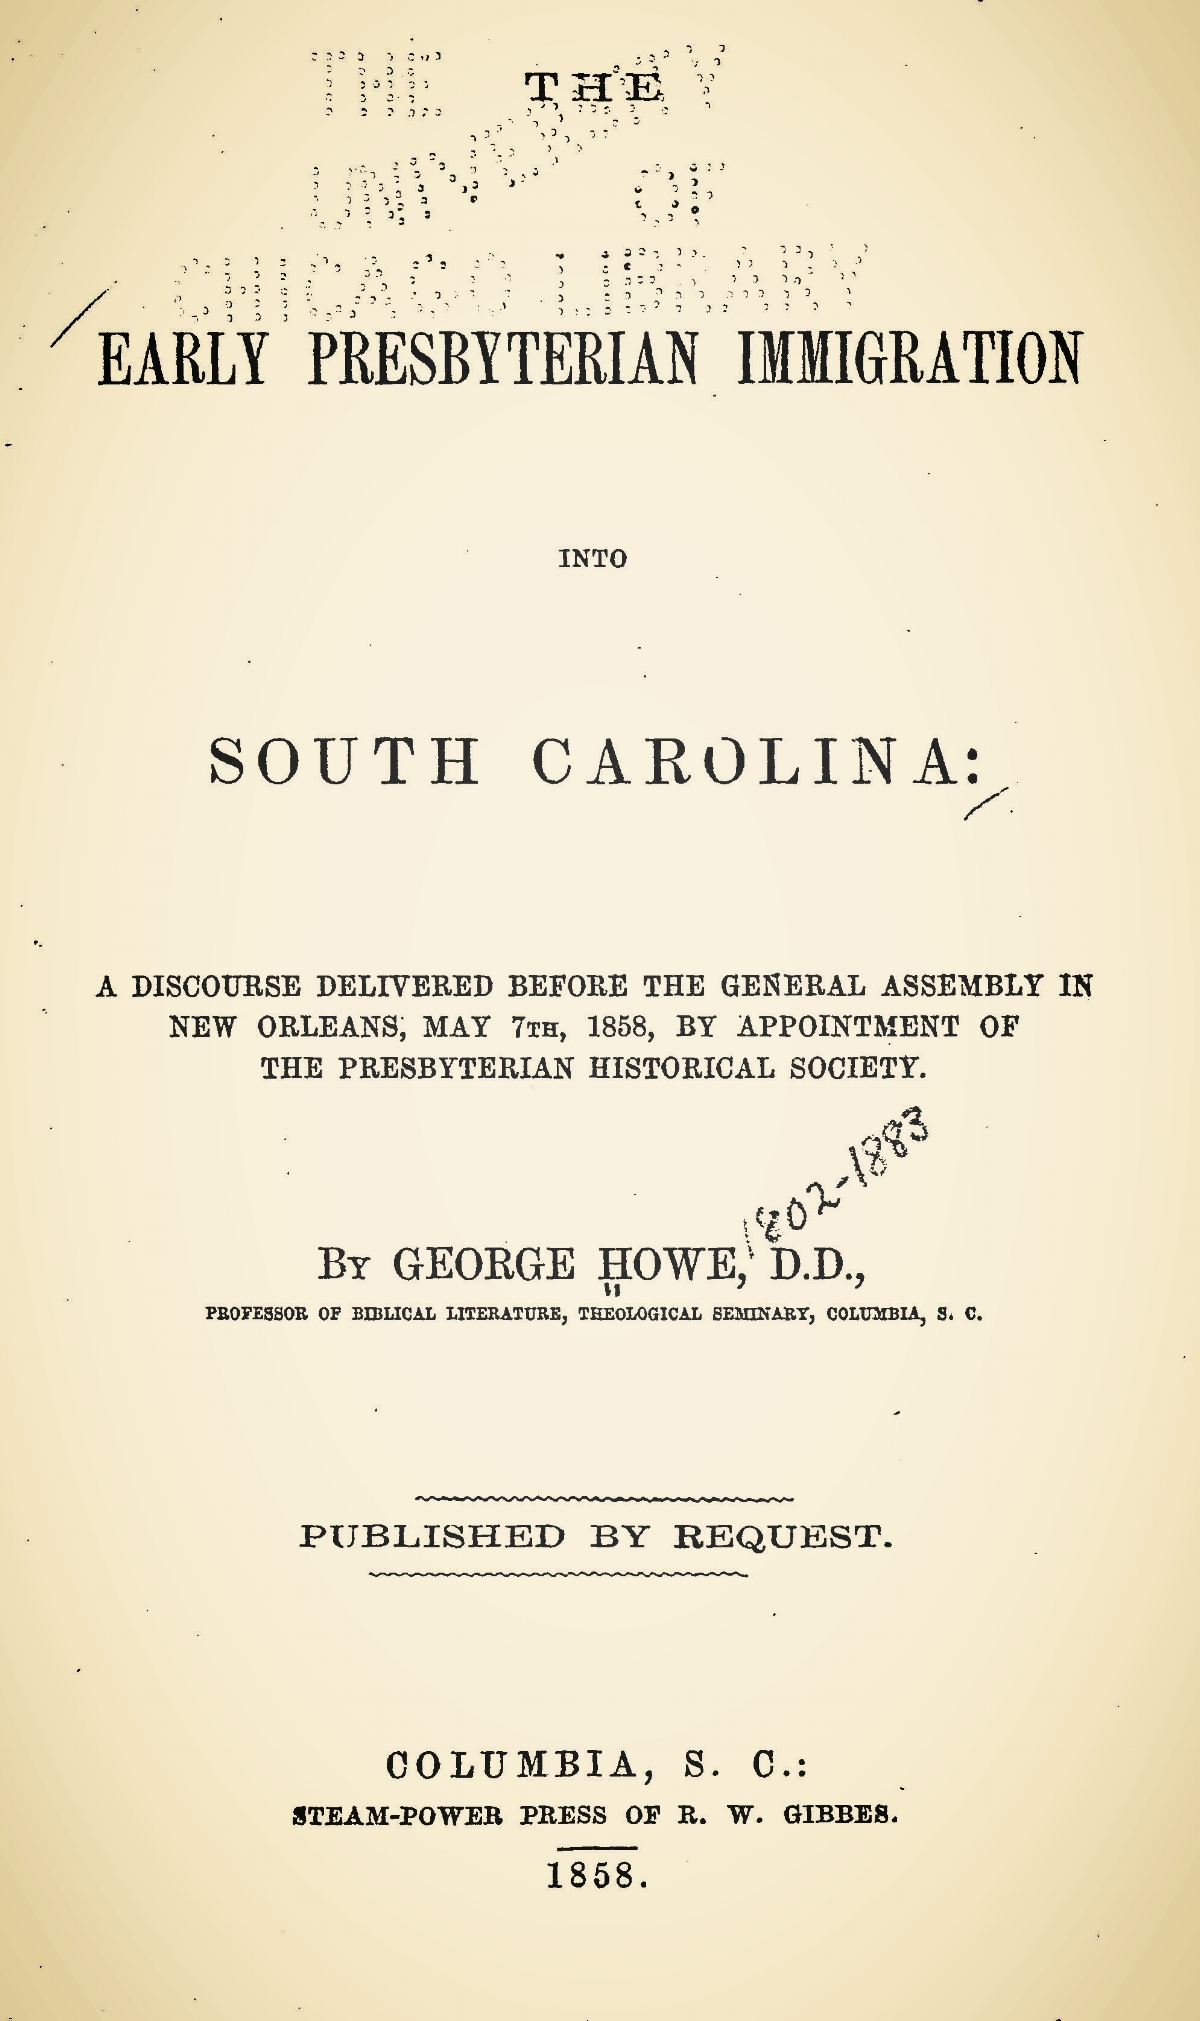 Howe, George, The Early Presbyterian Immigration into South Carolina Title Page.jpg